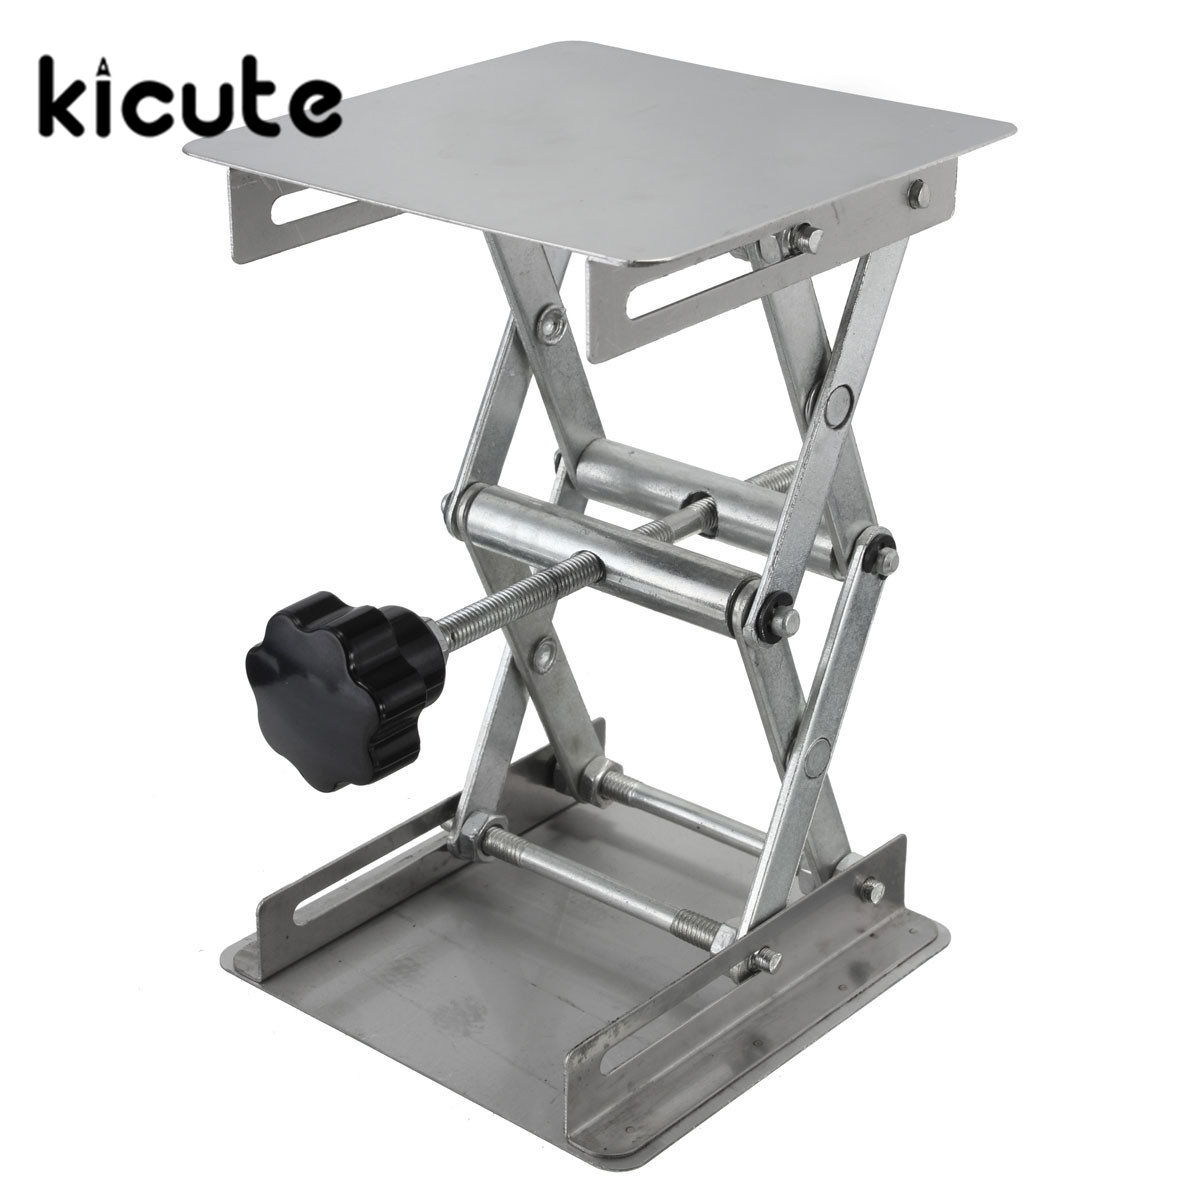 Kicute New High Quality Stainless Steel Lab Jack Lifting Table Laboratory Platform Support Jack School Lab Supplies100*100*160mm